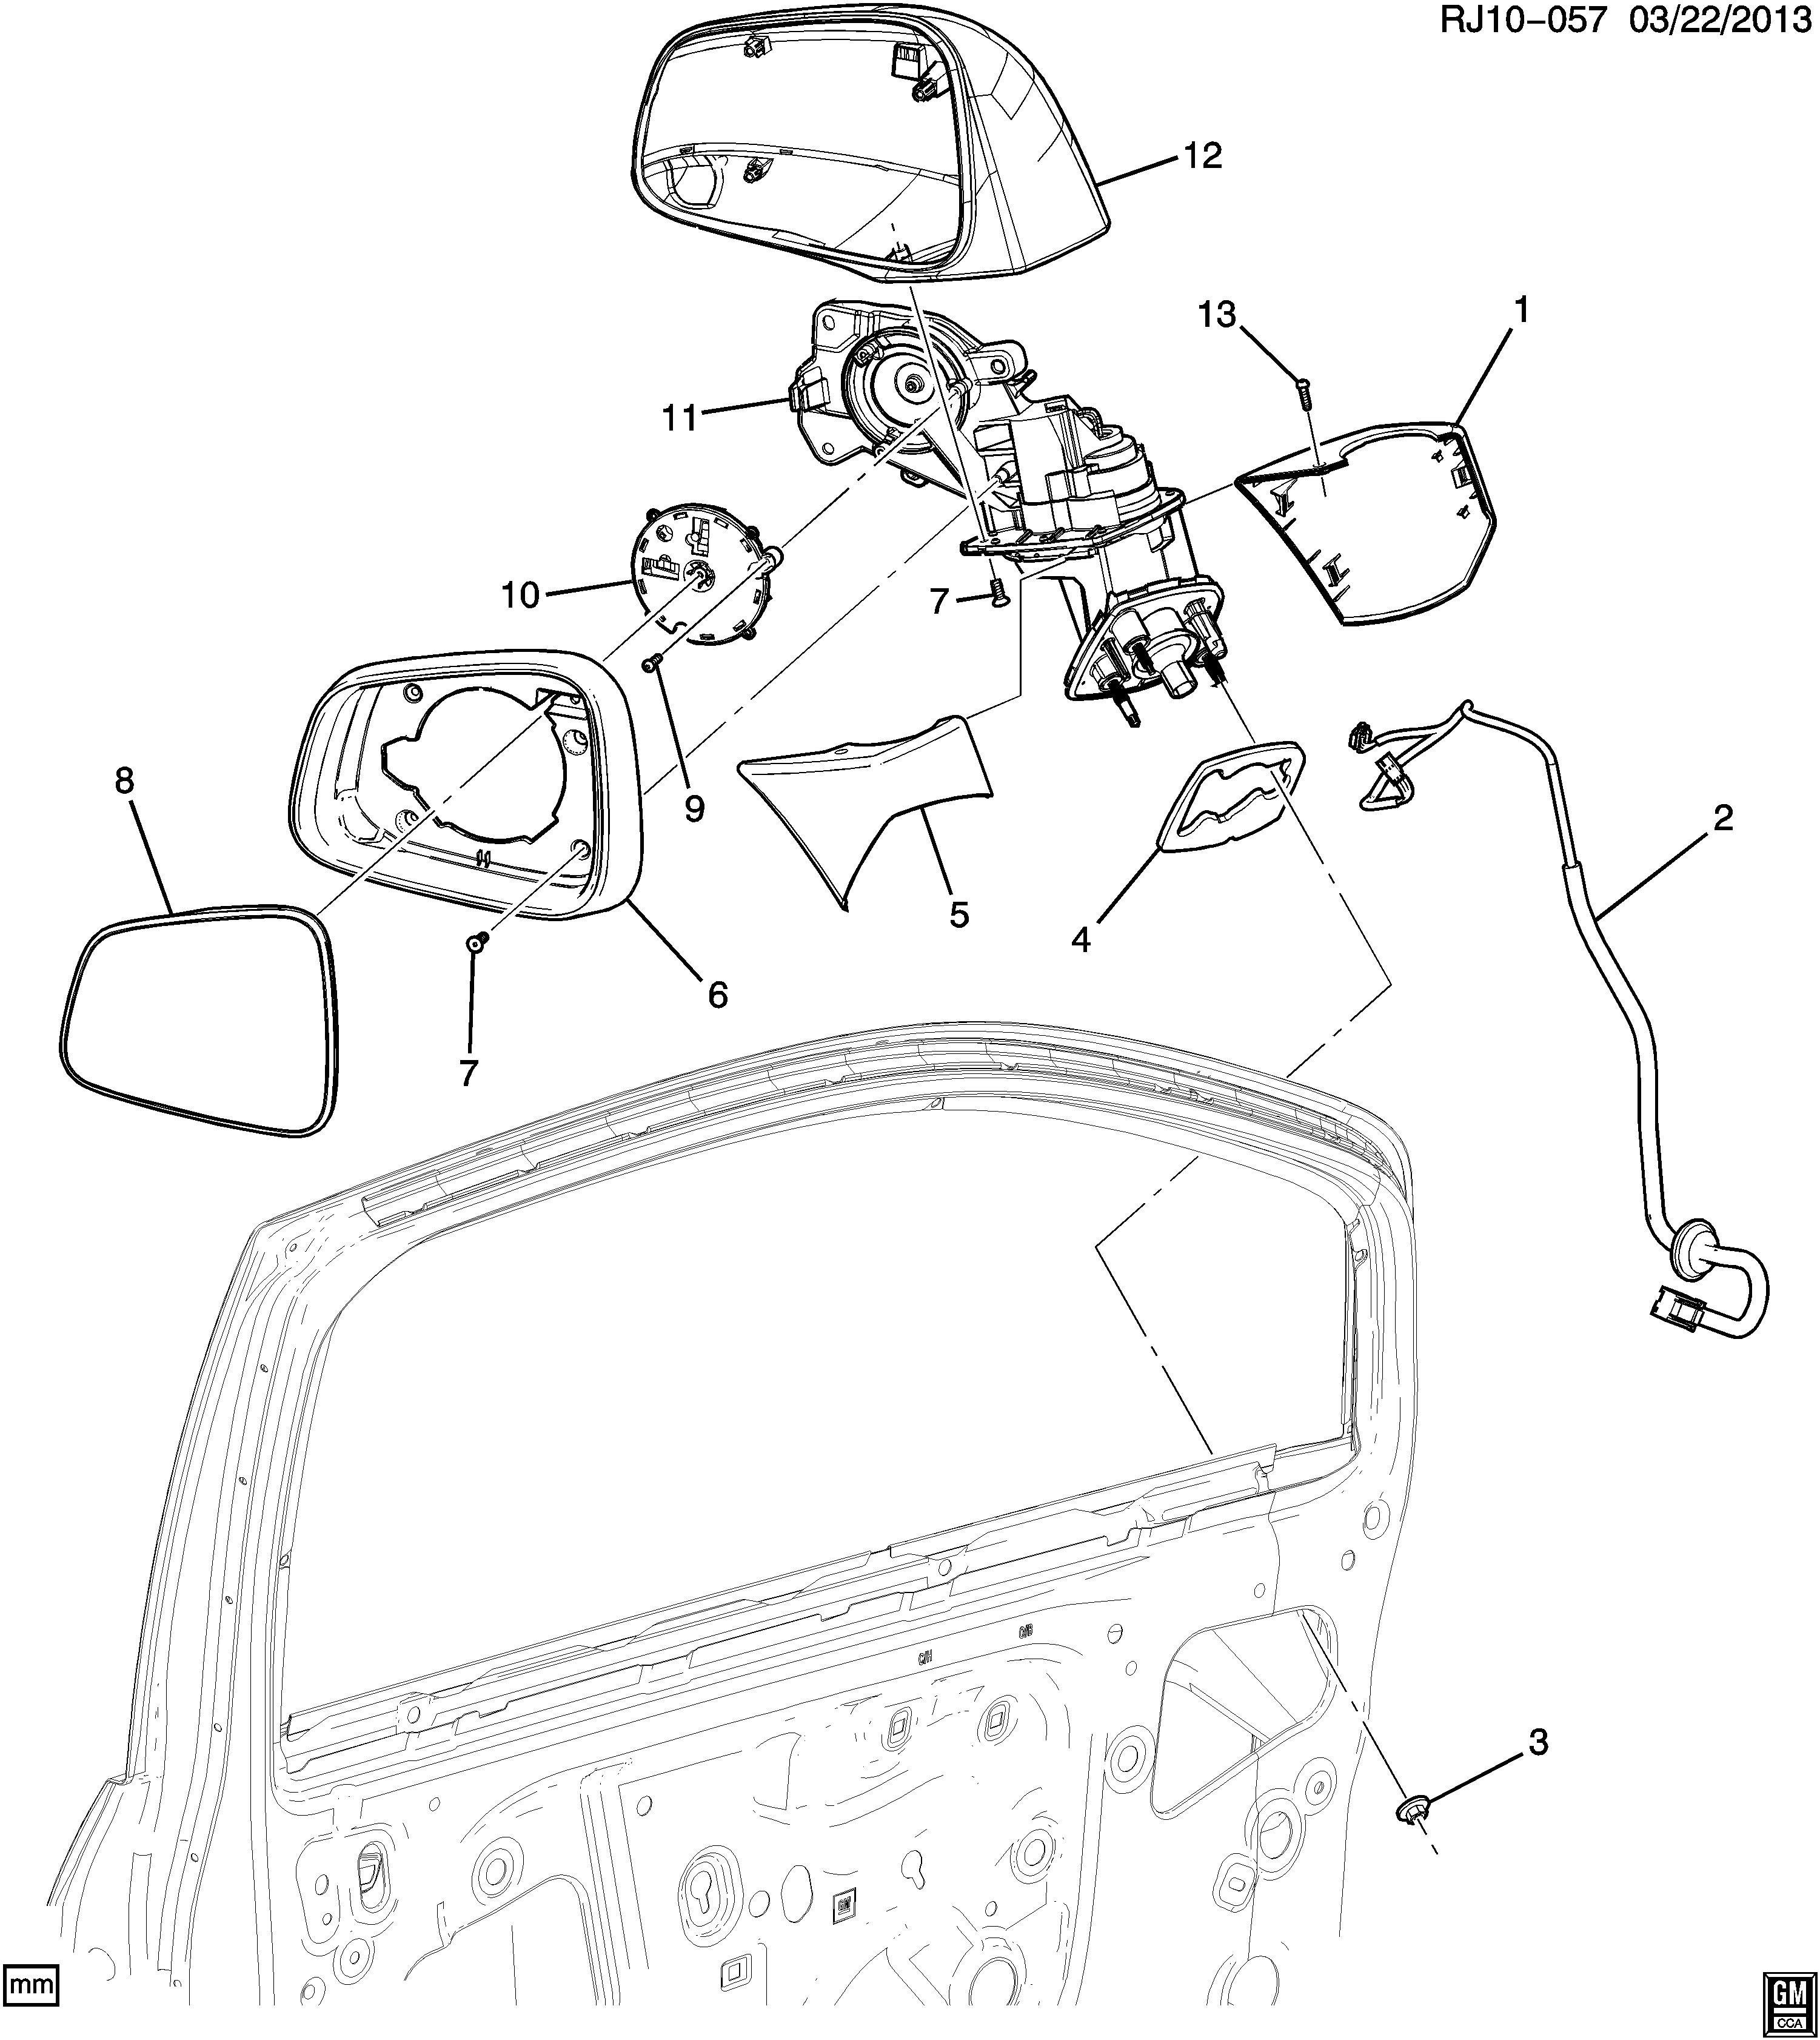 Chevrolet Trax Glass. Inside/outside rear view. Glass, o/s